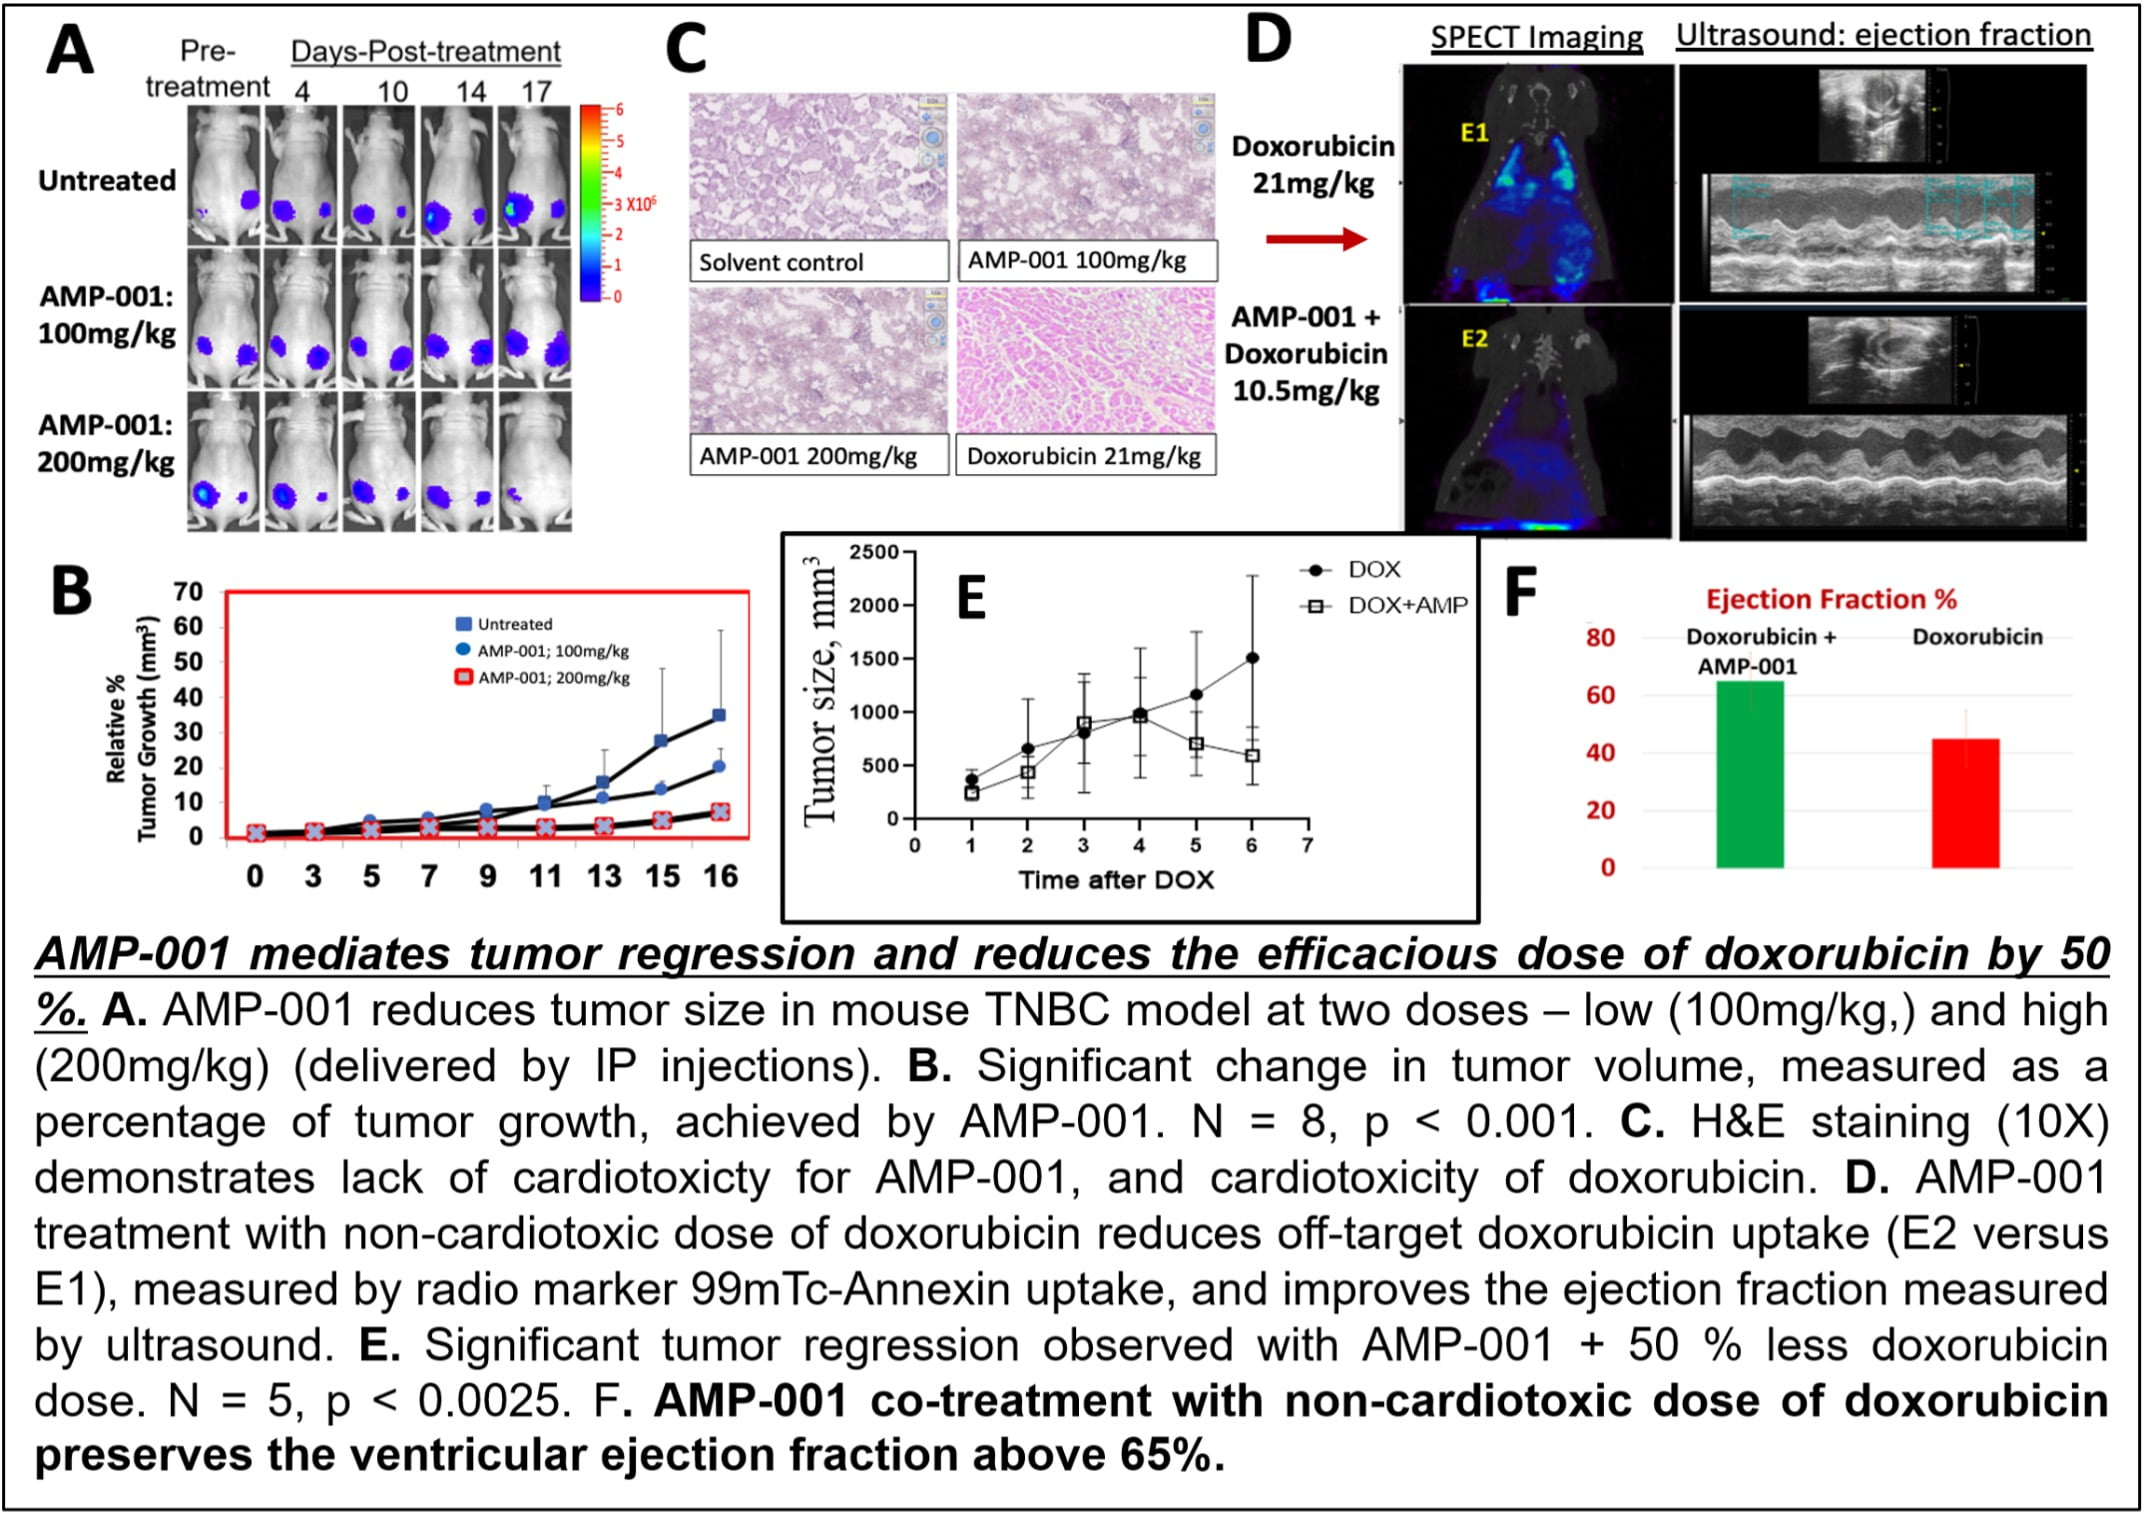 Sci-Engi-Medco Solutions Inc. Announces PLOS Publication of a Novel Mechanism of Action for Its AAAPT Technology Expanding the Therapeutic Index of Difficult to Treat Cancers